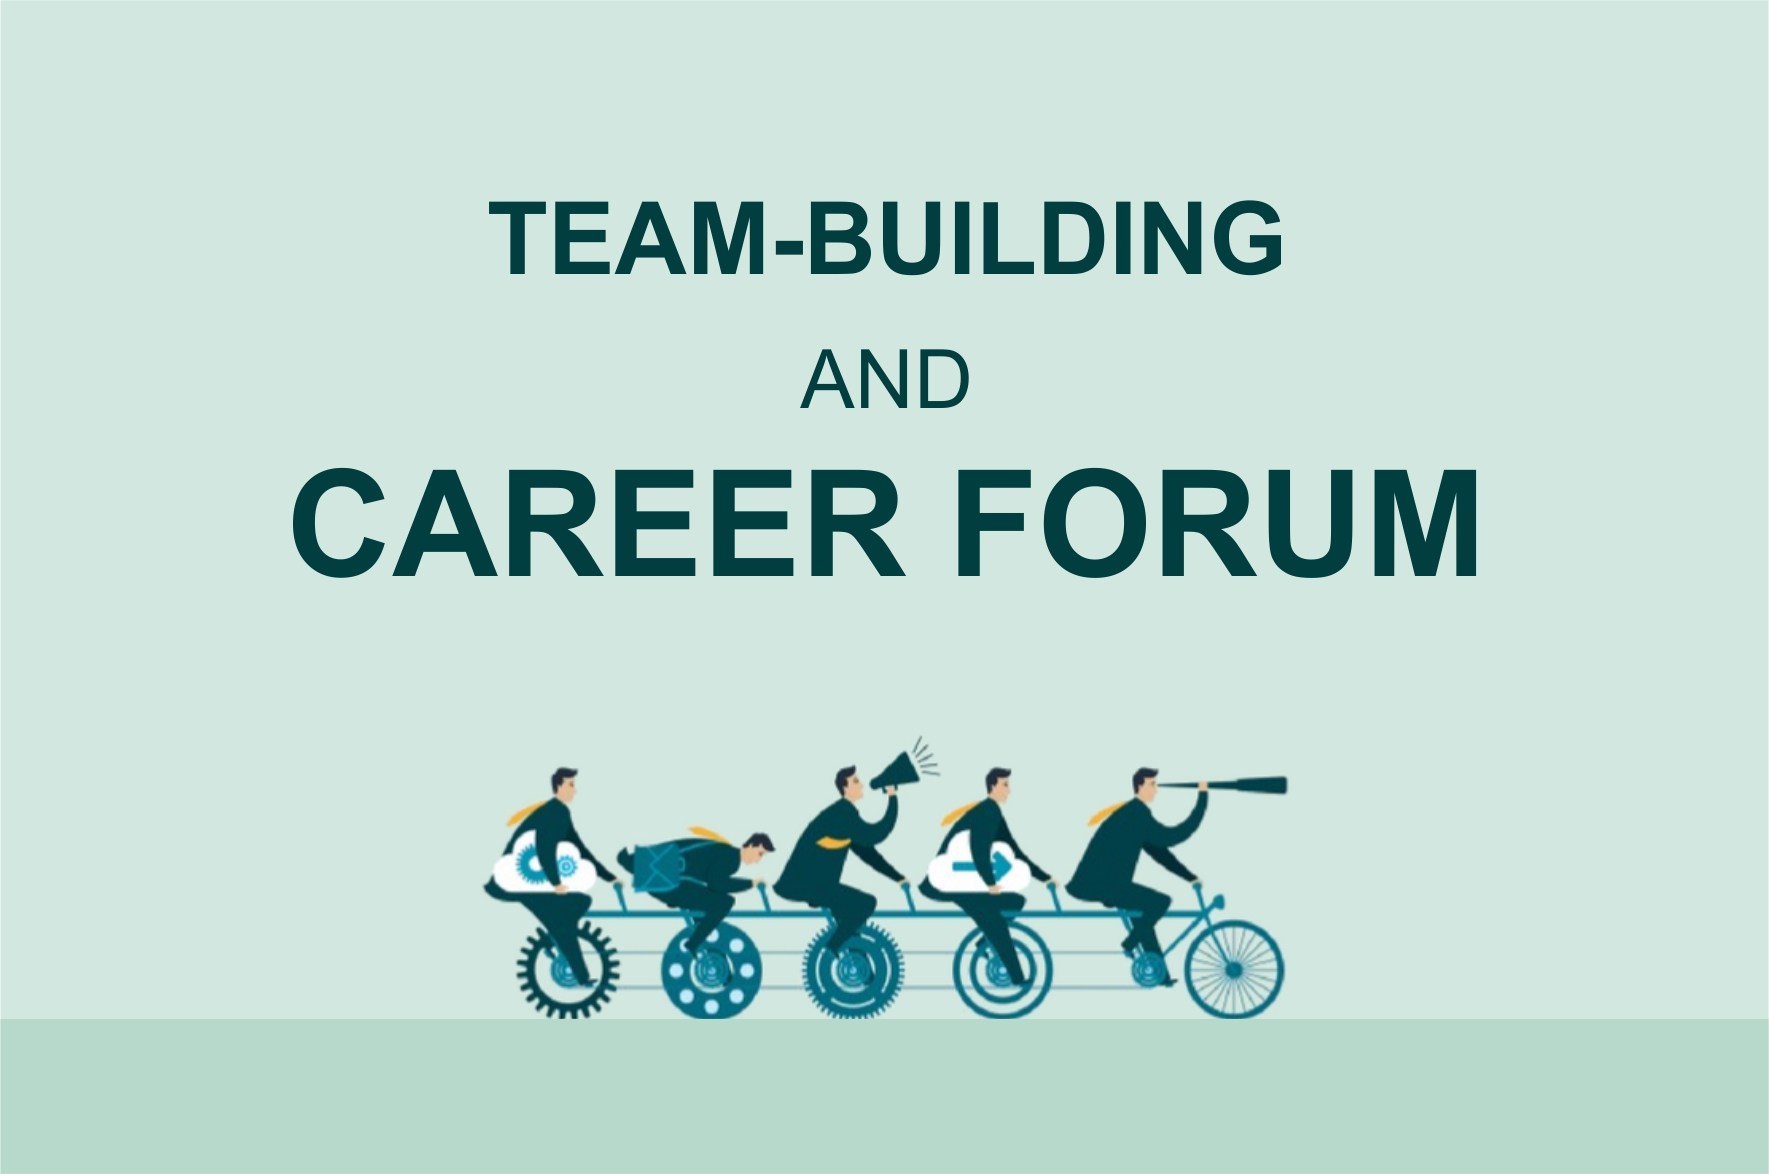 Team-building and Career Forum by InternetDevels & PM Business Solutions